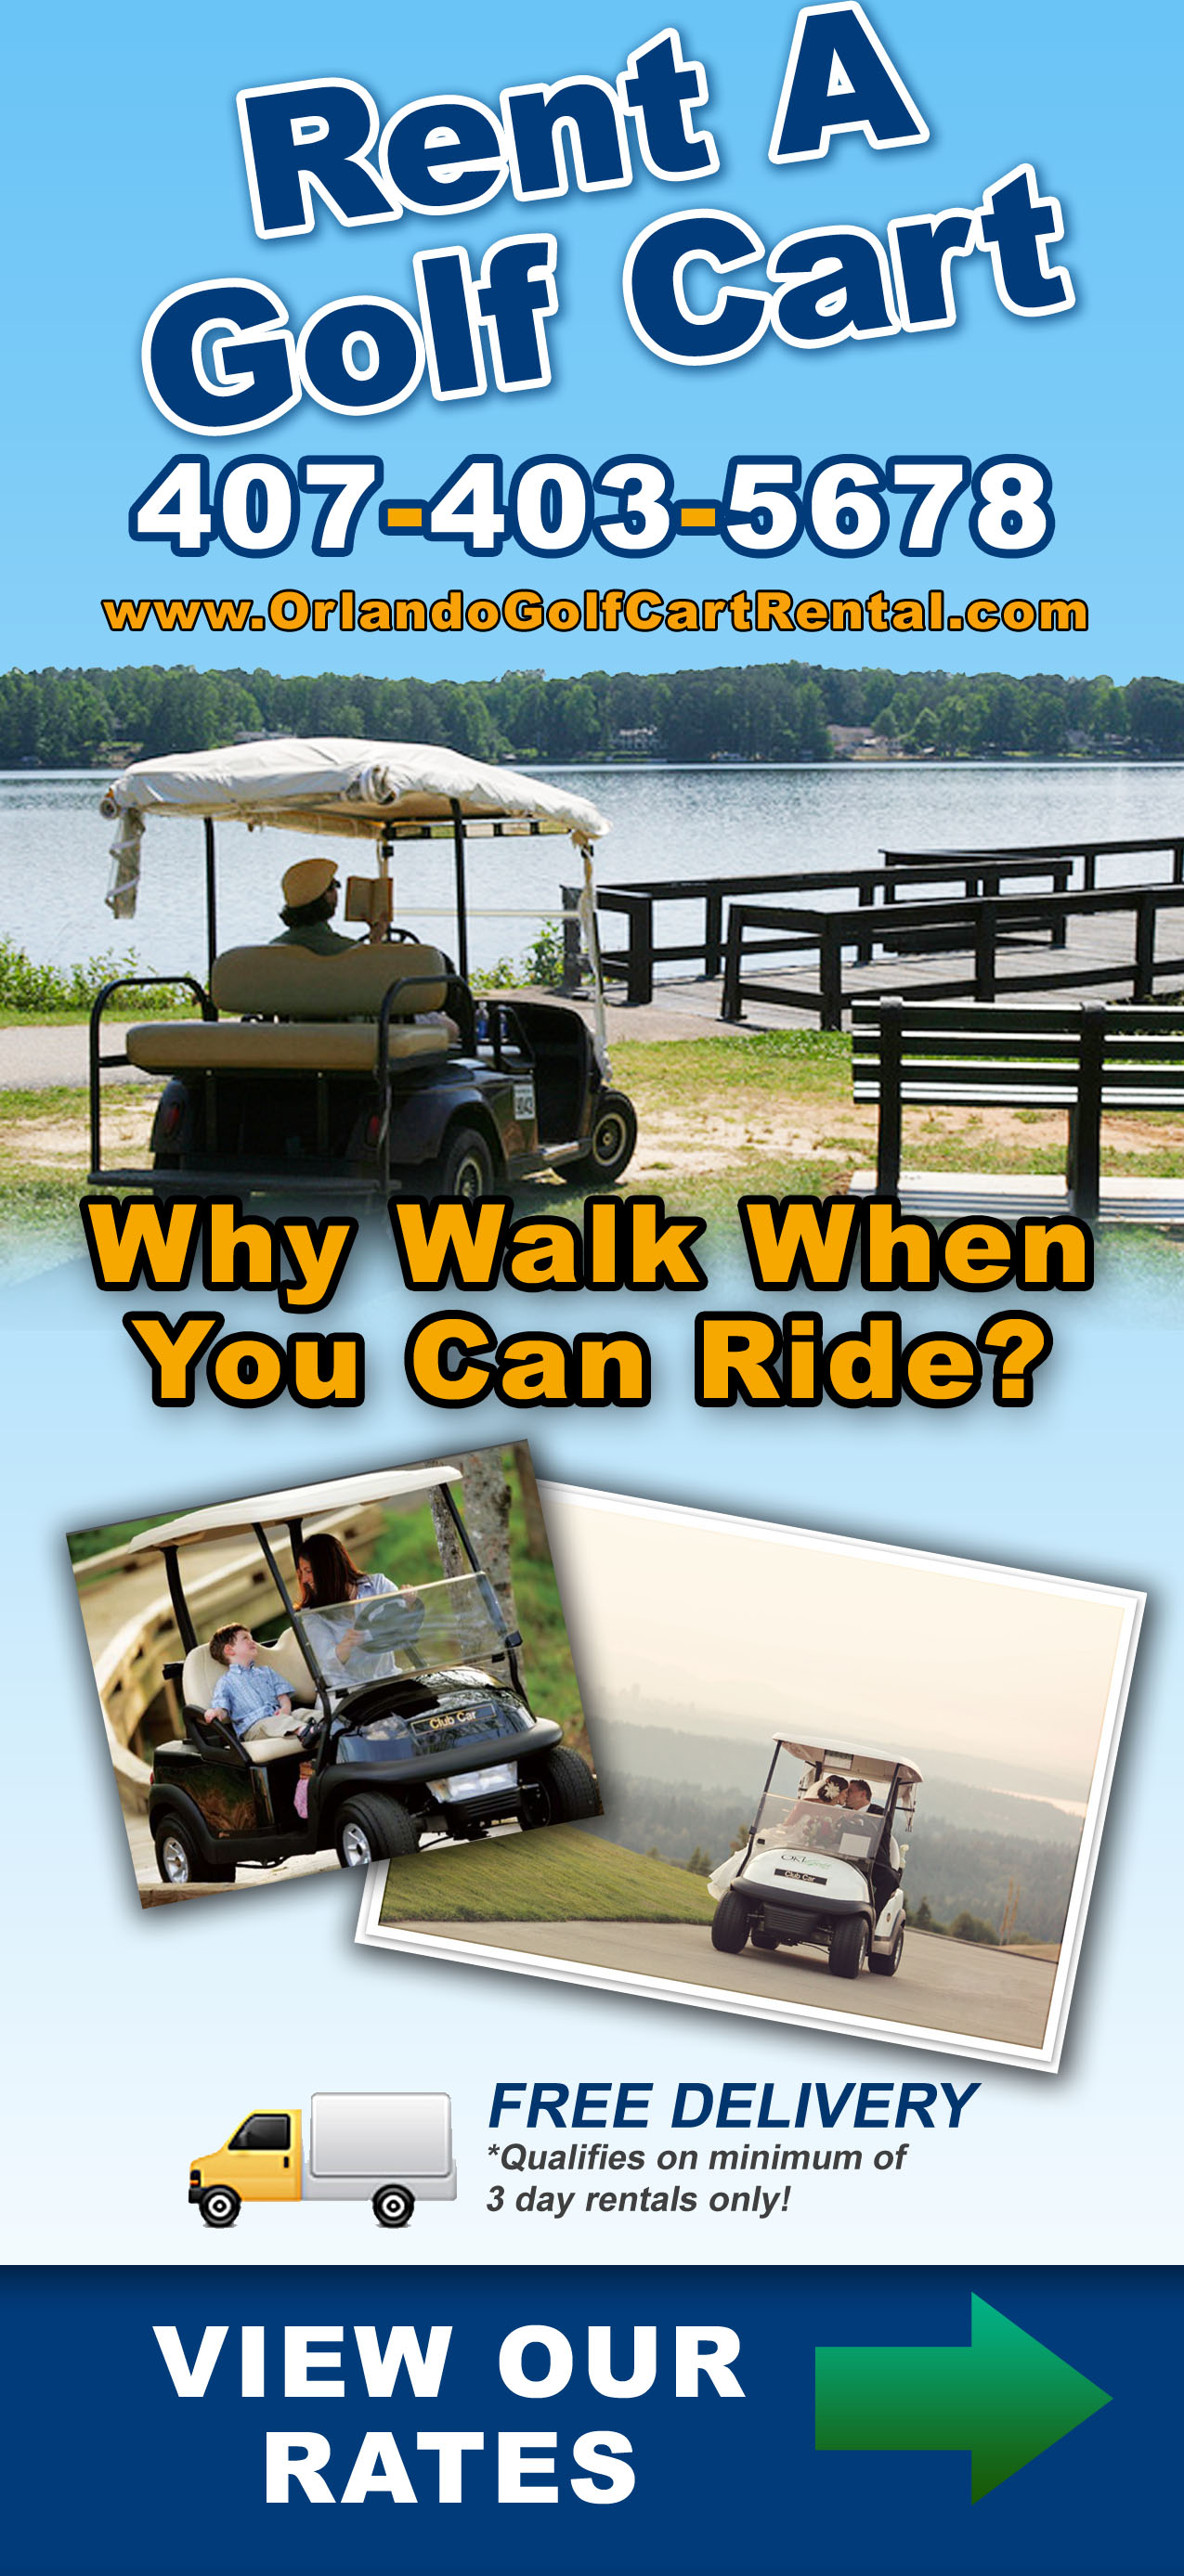 Orlando Golf Cart – Card / Brochure